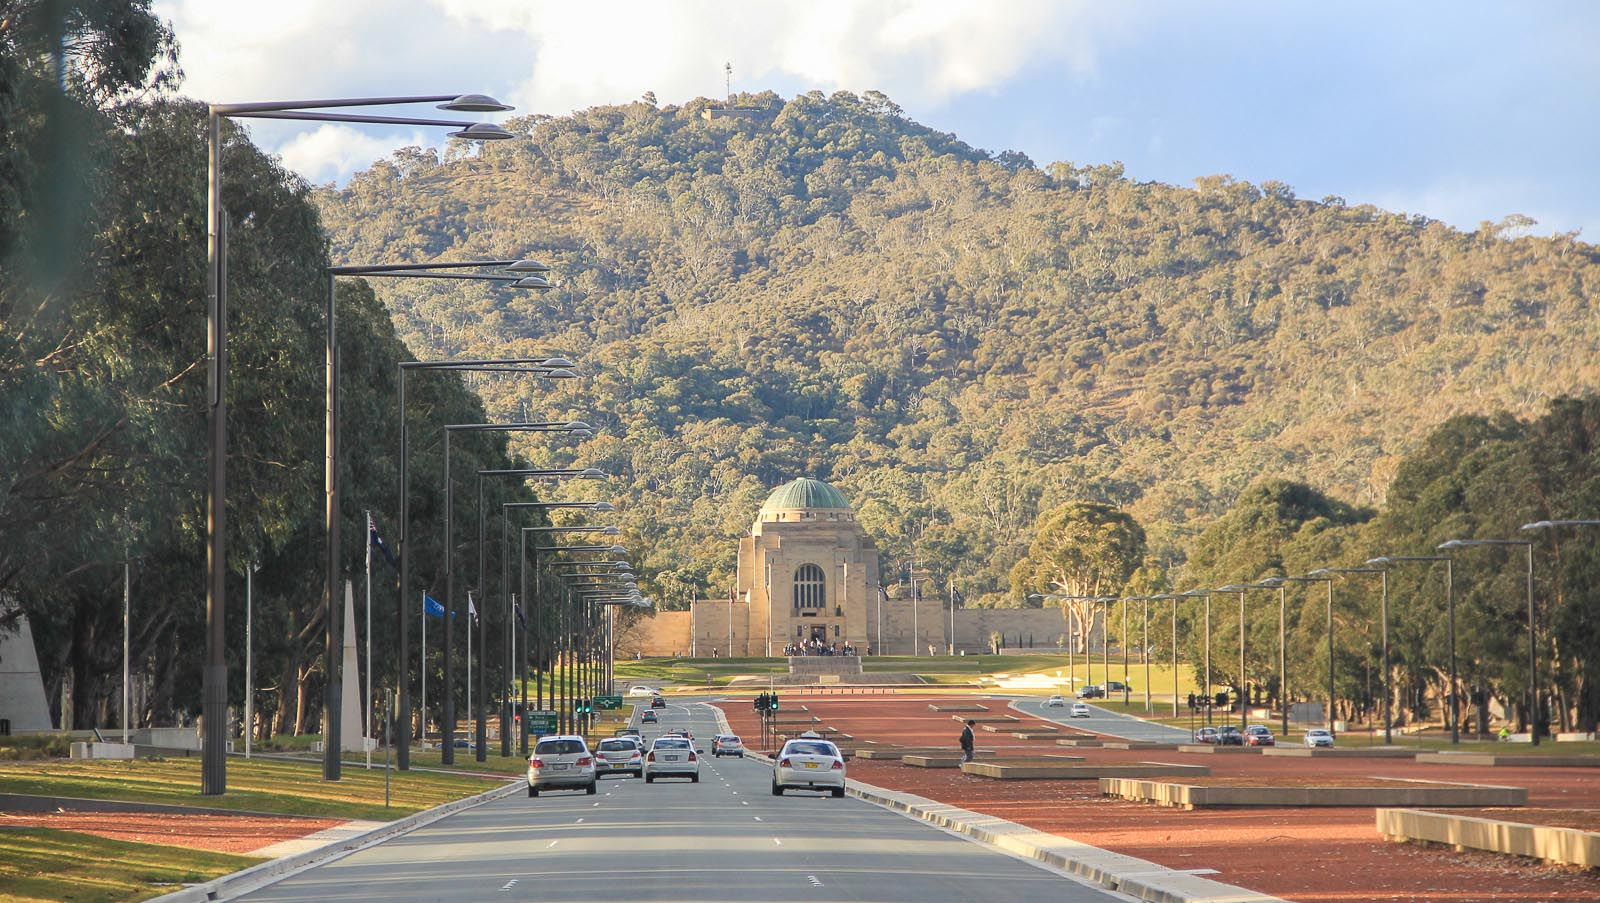 Canberra in a Day